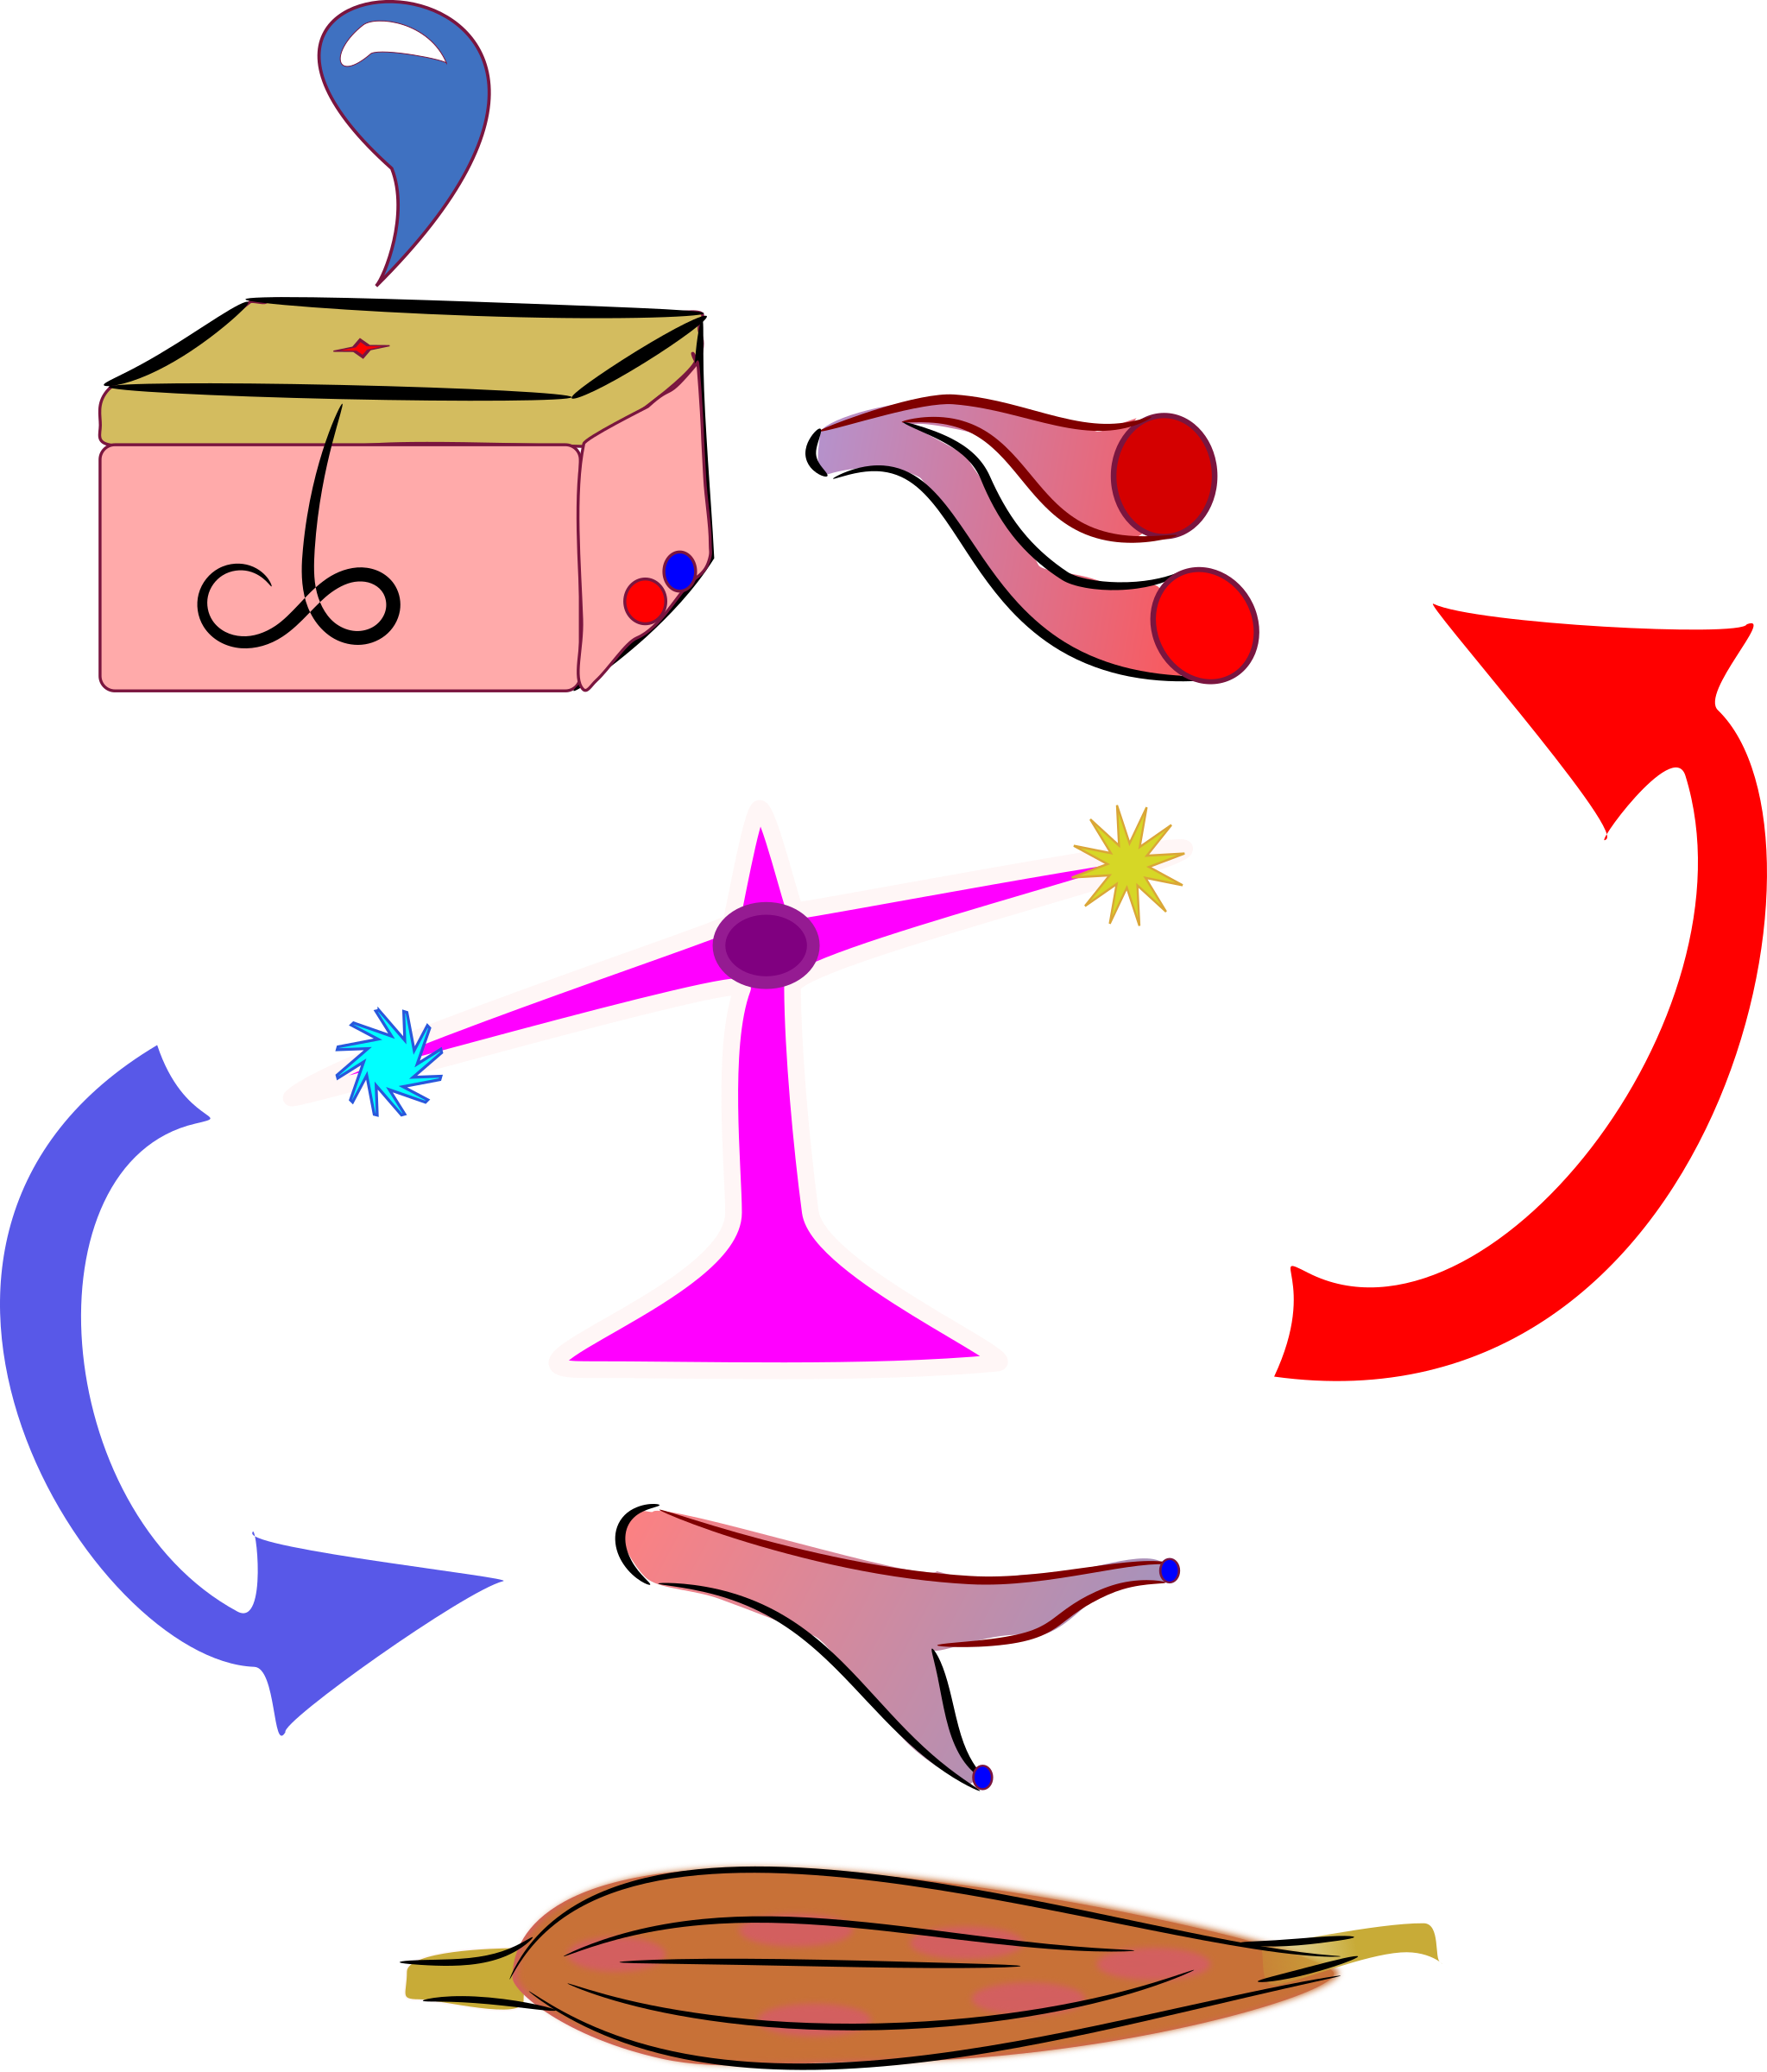 Thermoregulation big image png. Weight clipart homeostasis